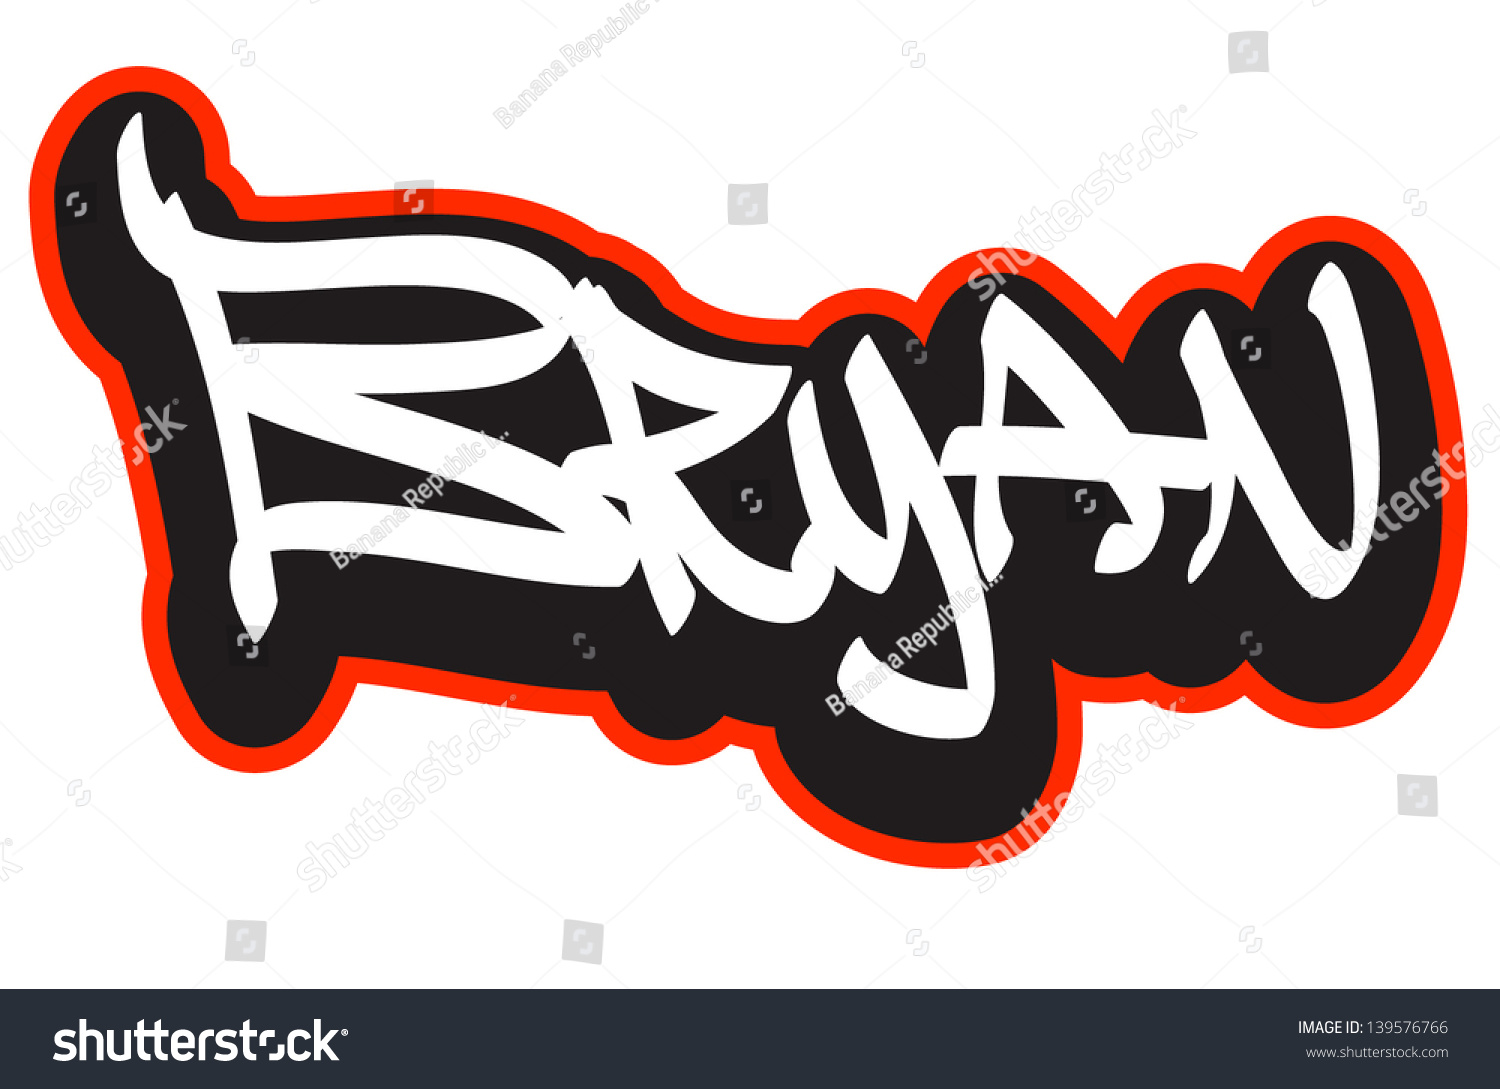 Bryan Graffiti Font Style Name Hip hop Design Template For T shirt